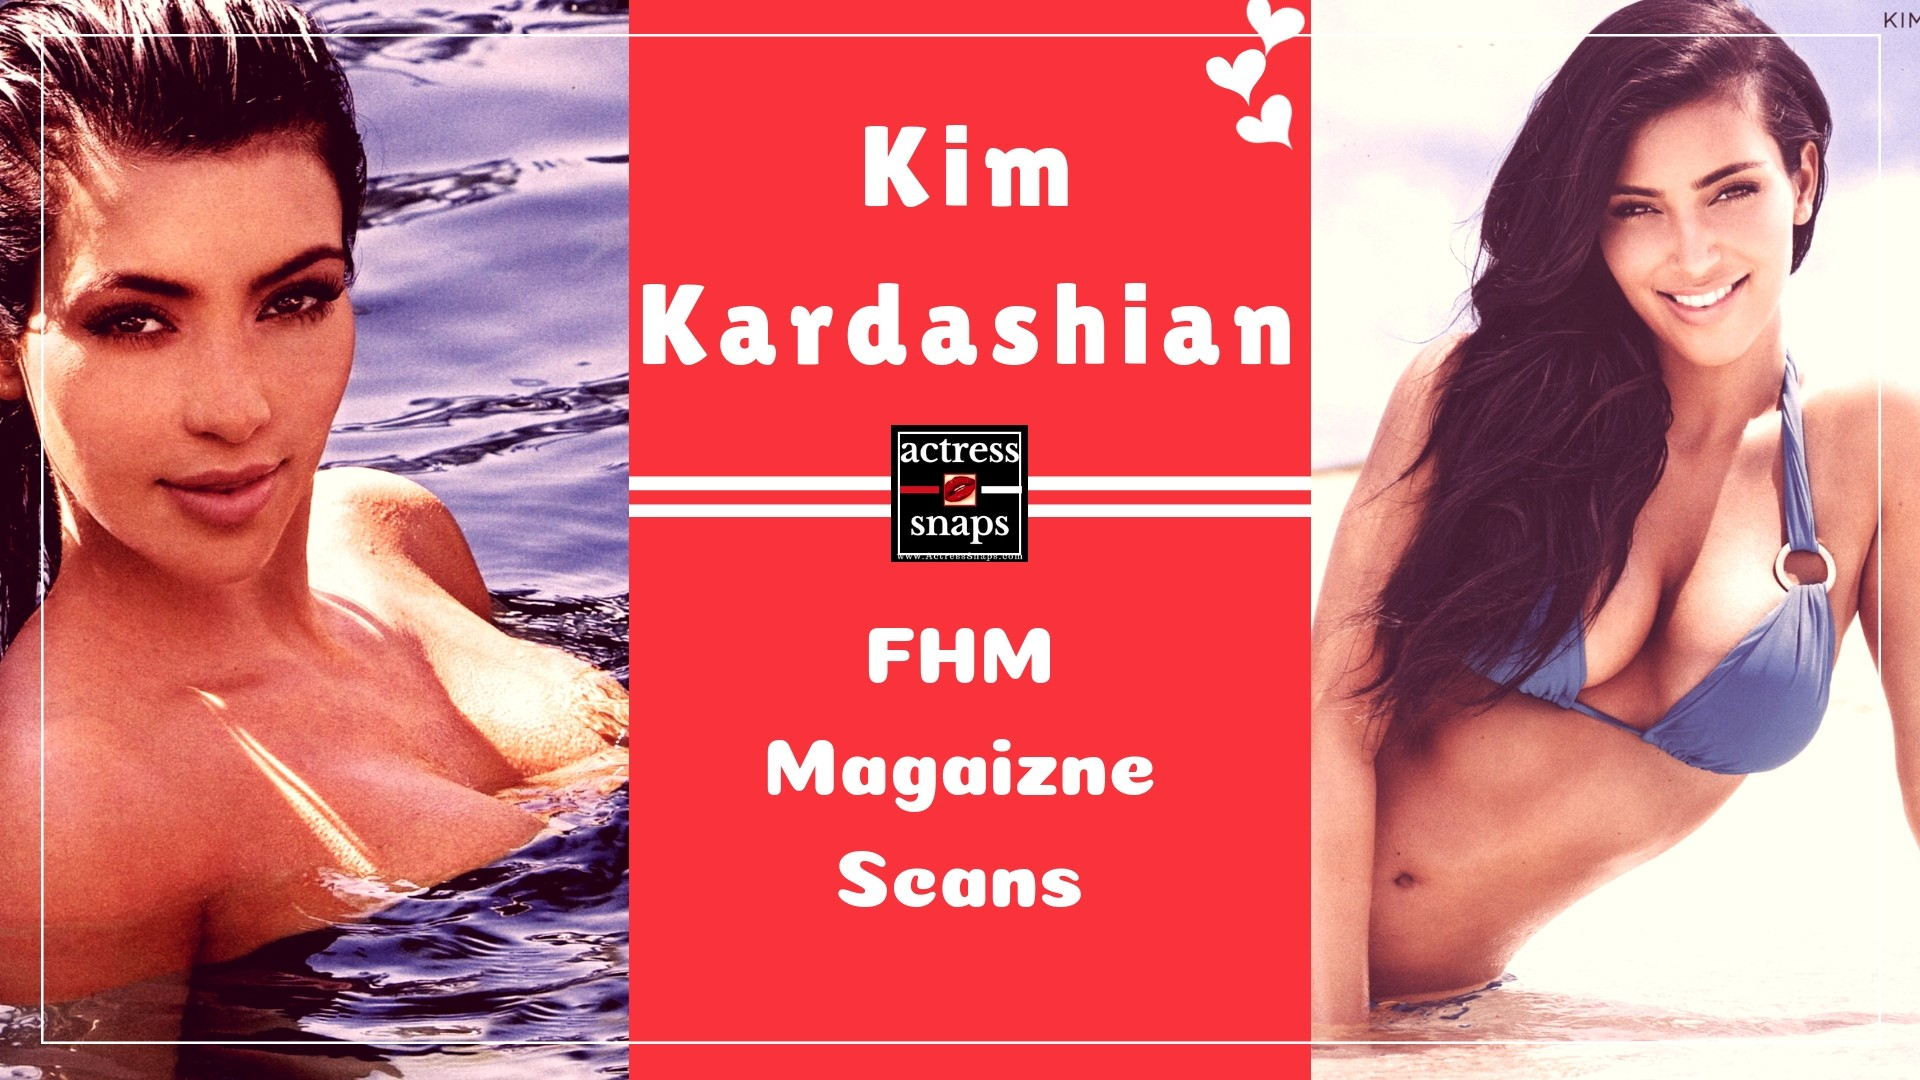 Kim Kardashian - FHM Magazine Scans - Sexy Actress Pictures | Hot Actress Pictures - ActressSnaps.com